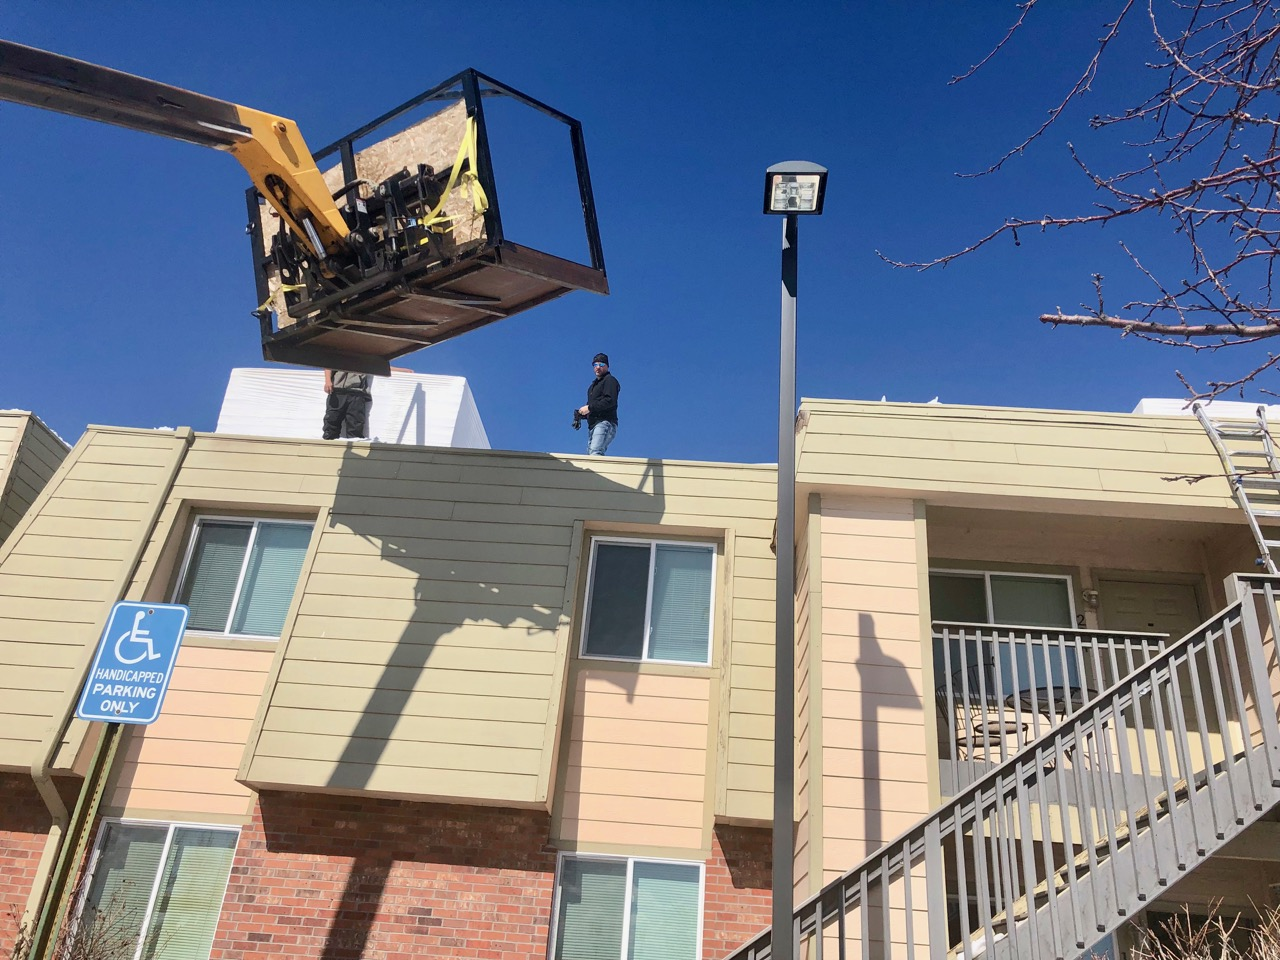 Who has snow blowers on their roof? McGeorge Mountain terrace Apartments does!